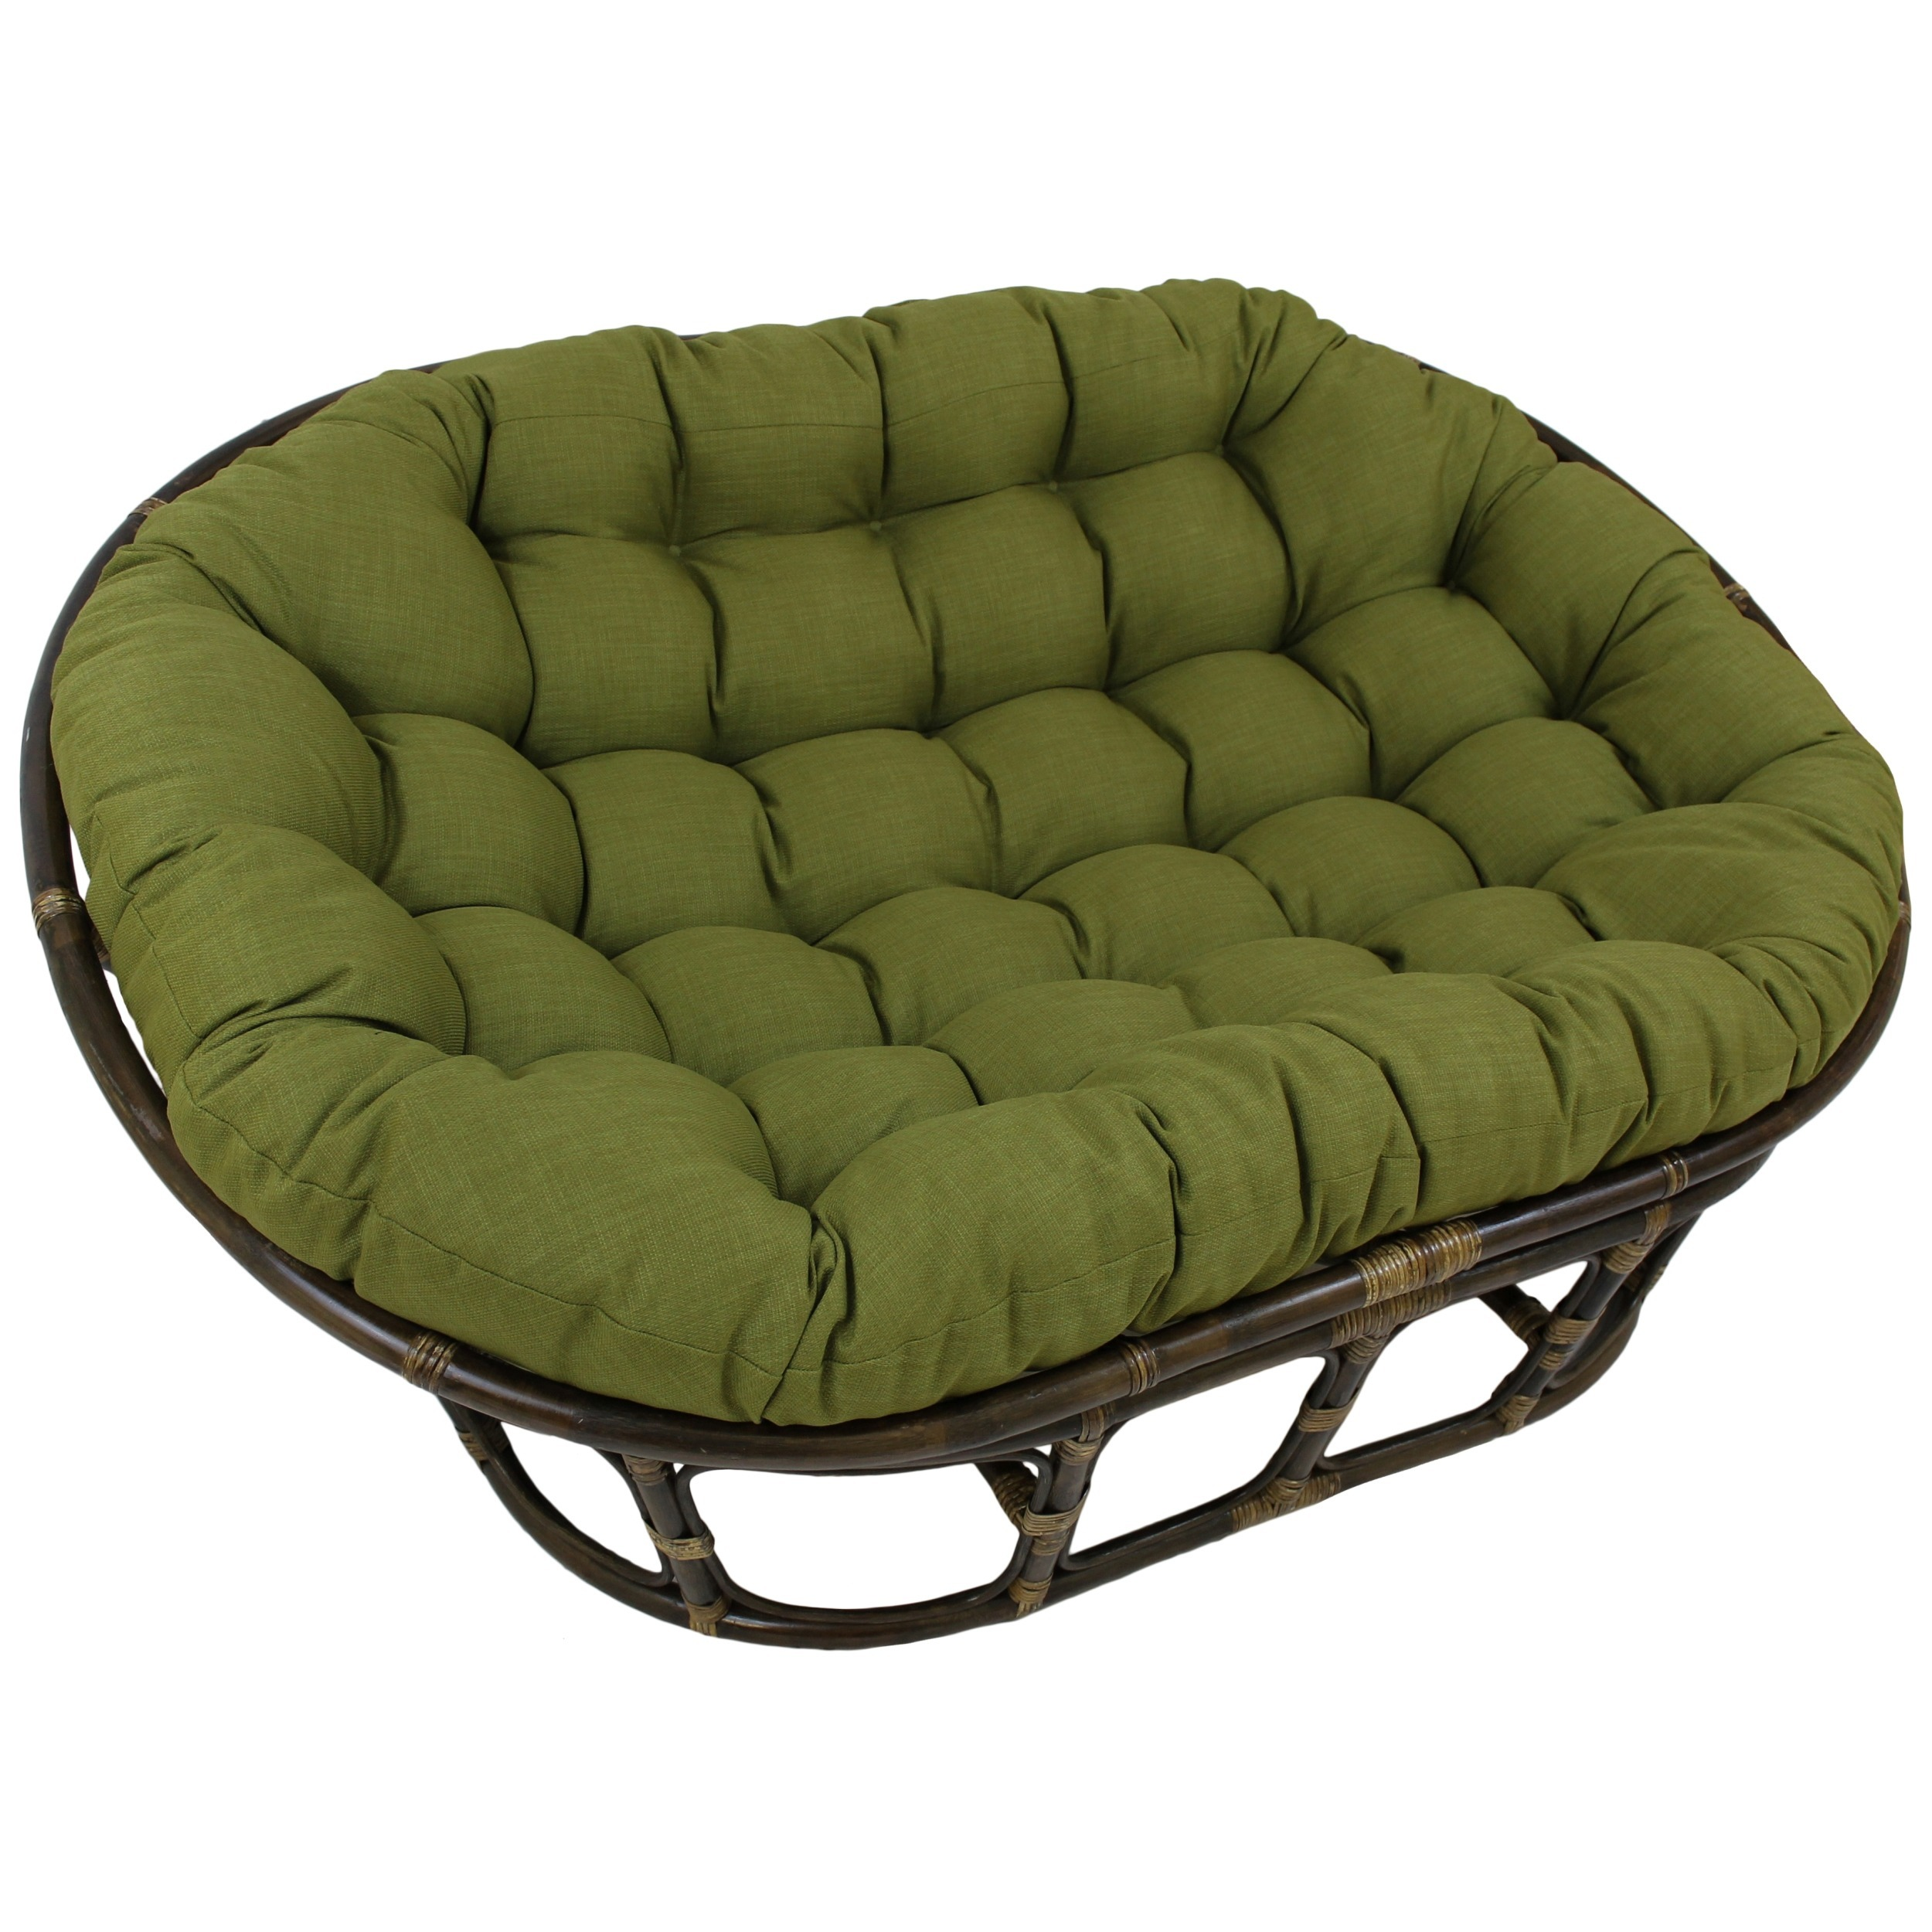 dark brown rattan outdoor papasan chair with green cushion seat for inspiring furniture ideas